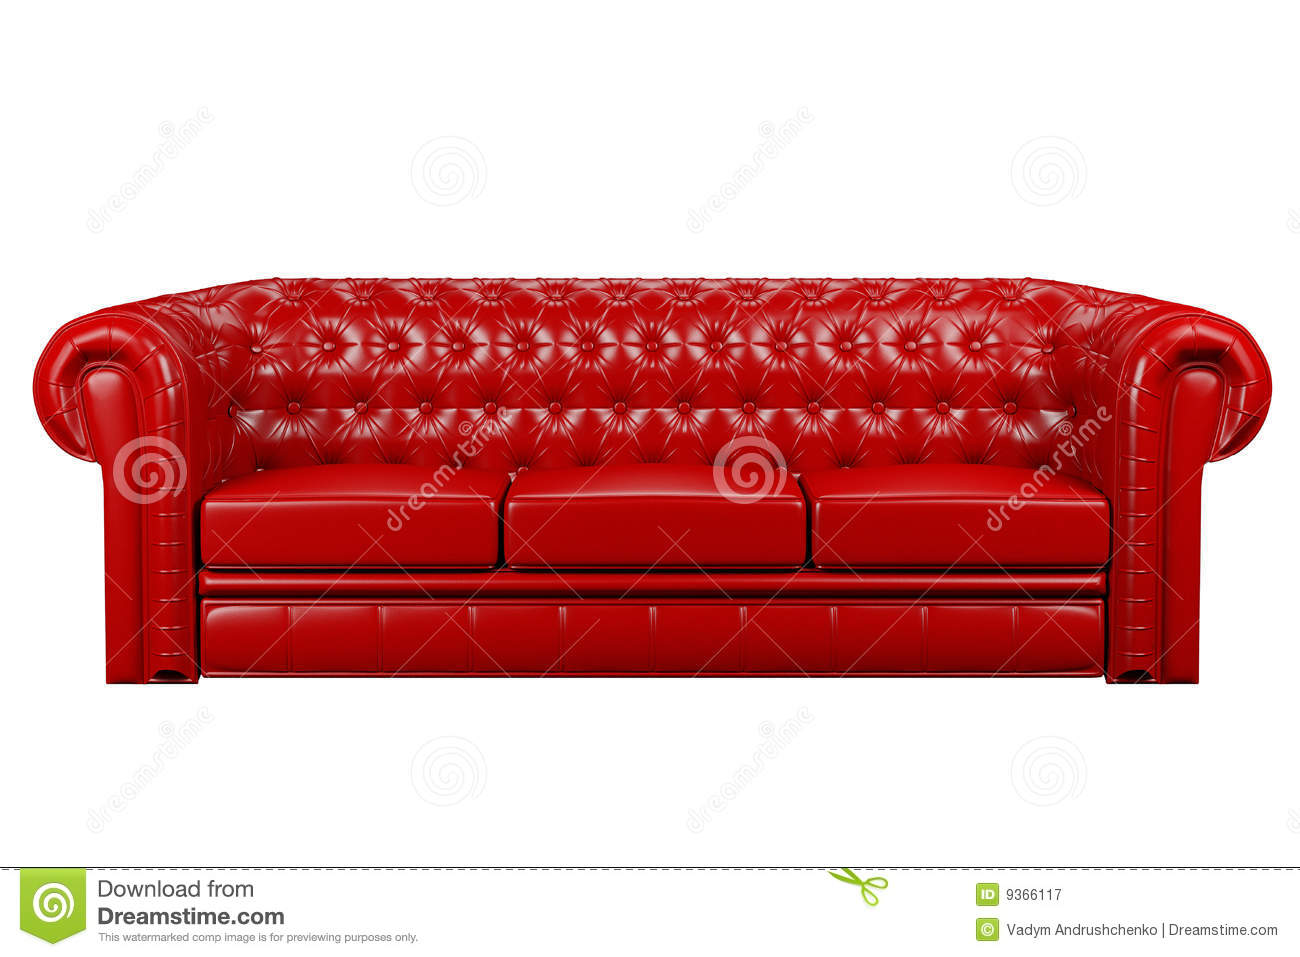 more similar stock images of red leather sofa isolated over white 3d. beautiful ideas. Home Design Ideas